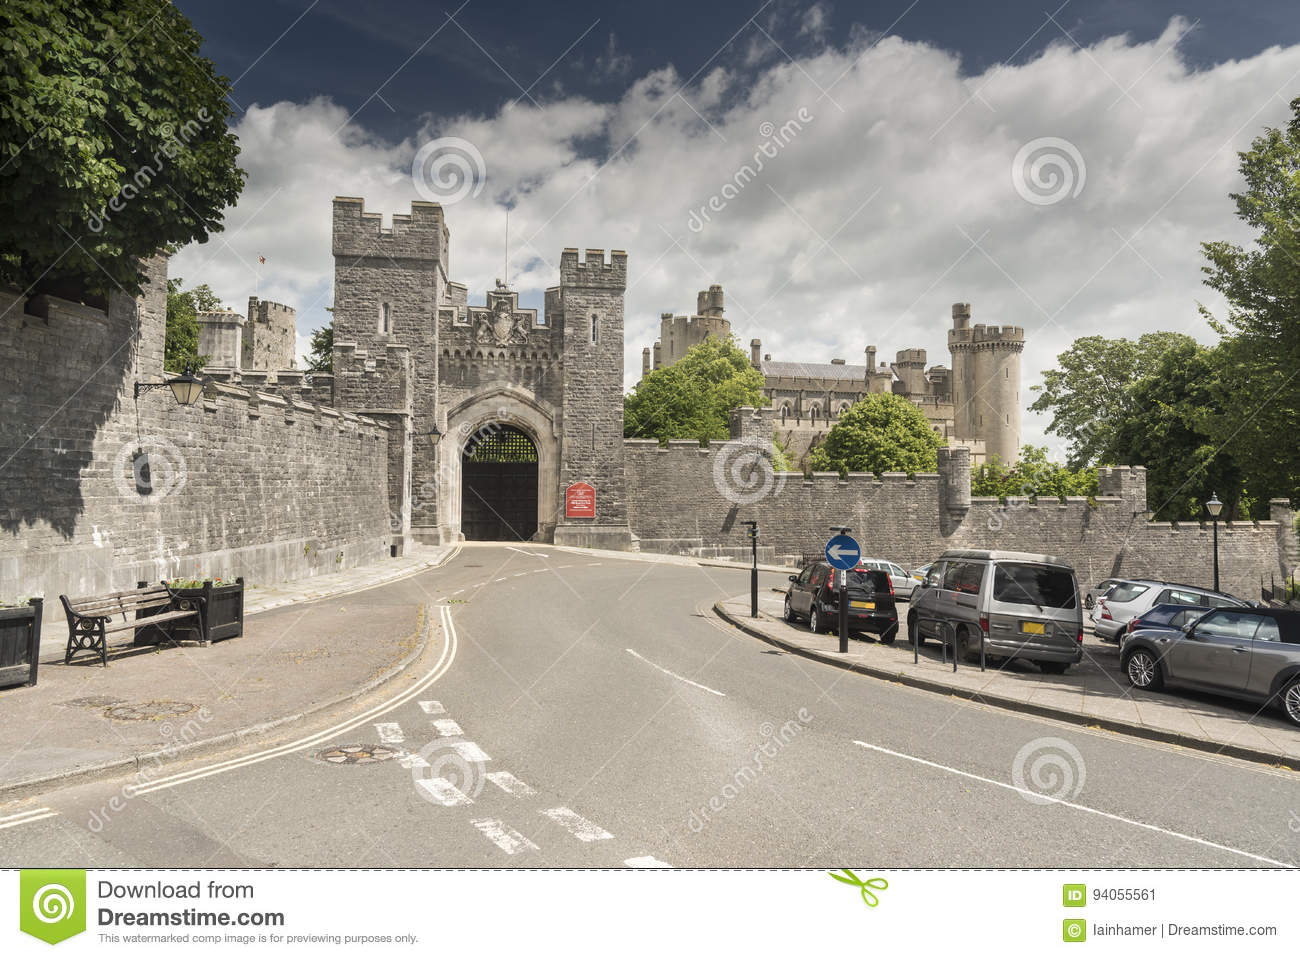 Château Arundel le Sussex occidental d Arundel de passage